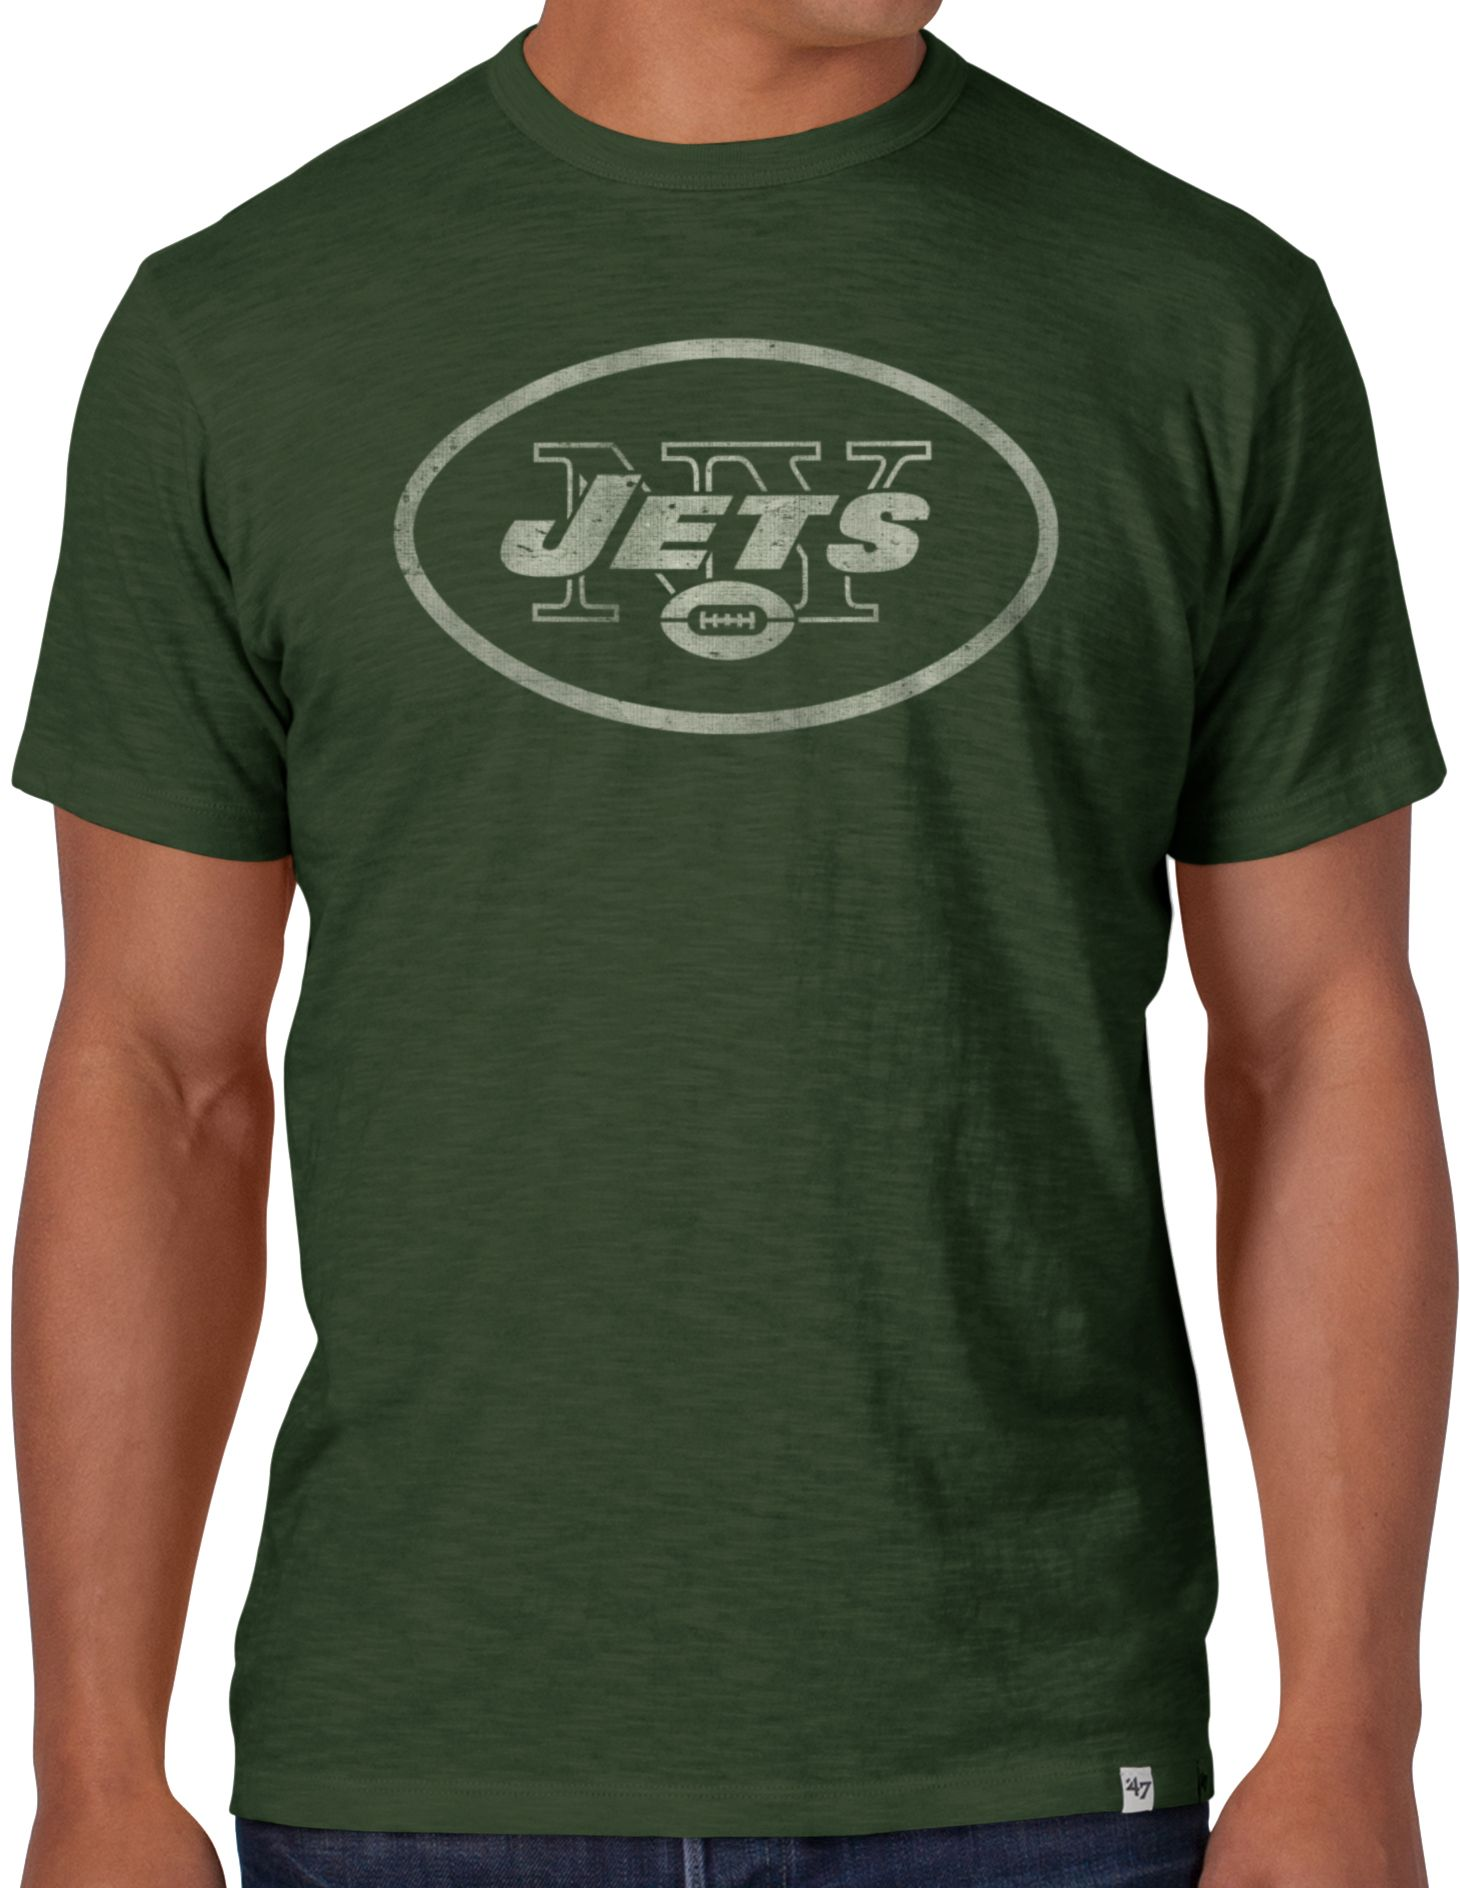 47 Mens New York Jets Scrum Logo T Shirt Dicks Sporting Goods